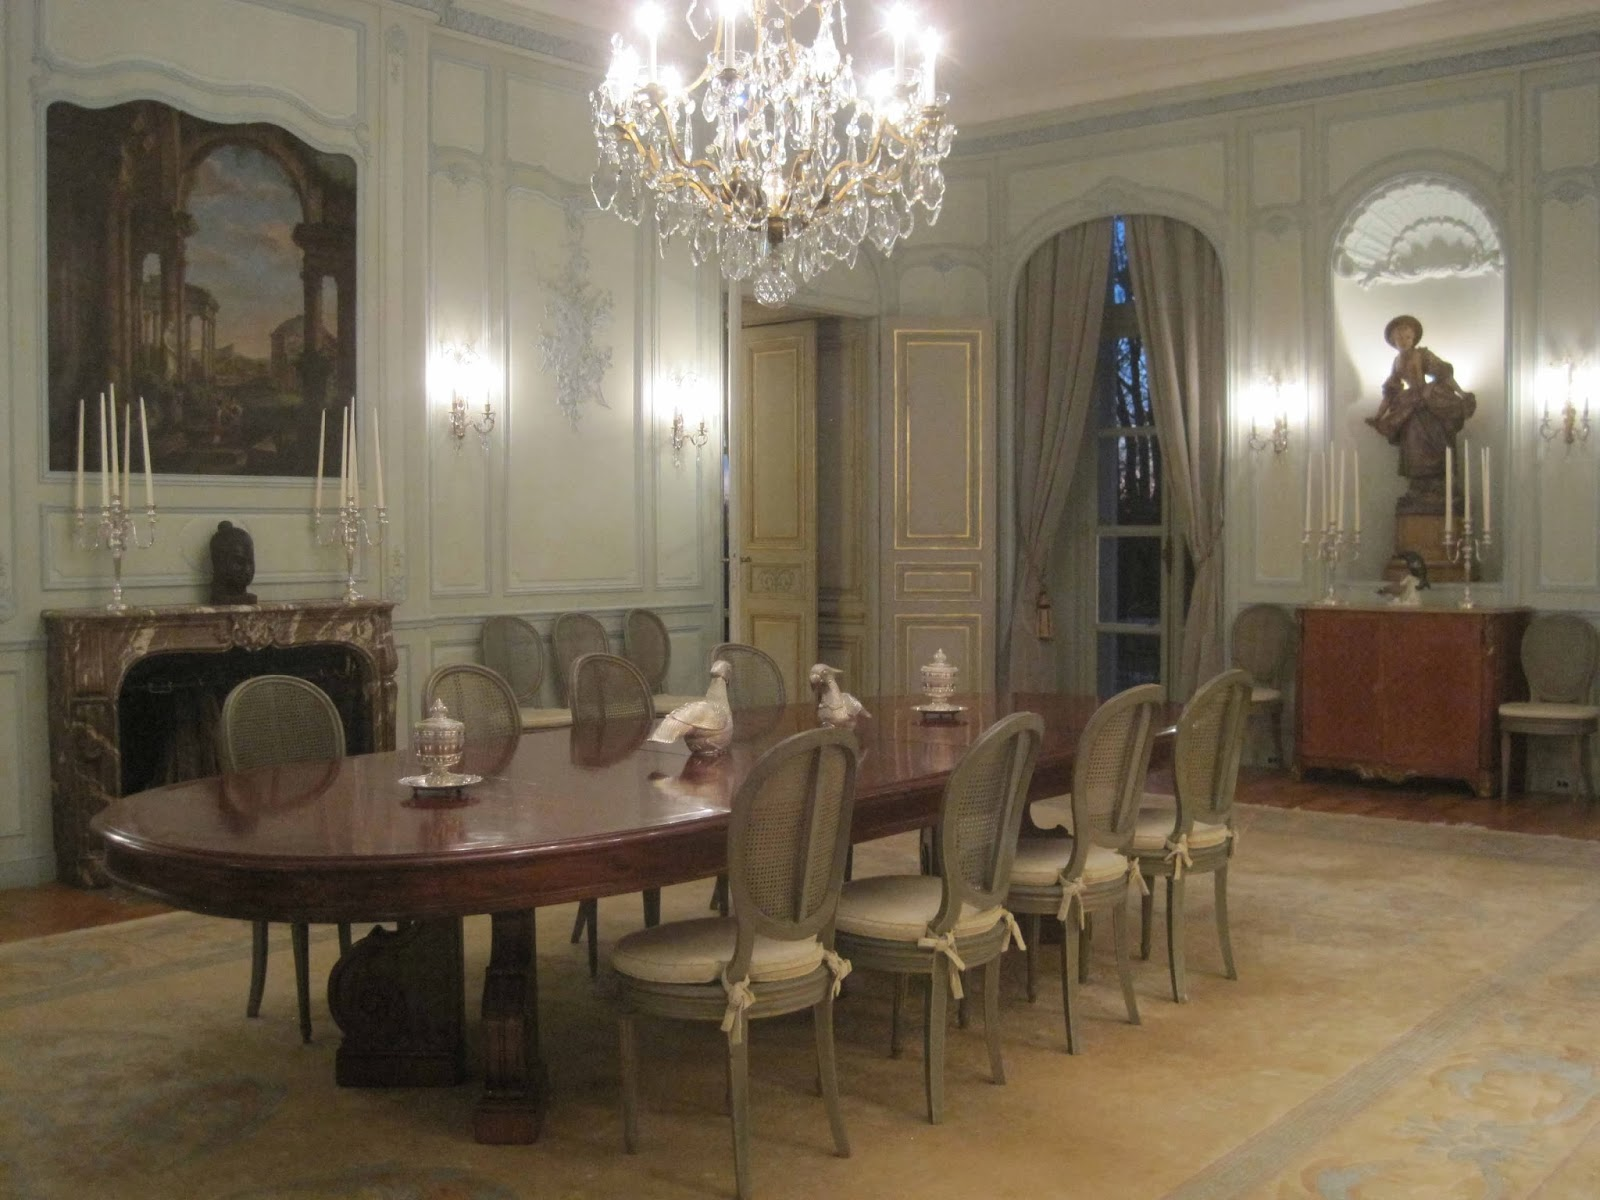 Netdining Rooms With Chandeliers : ... chandeliers i was transfixed by this picture the chandelier an antique